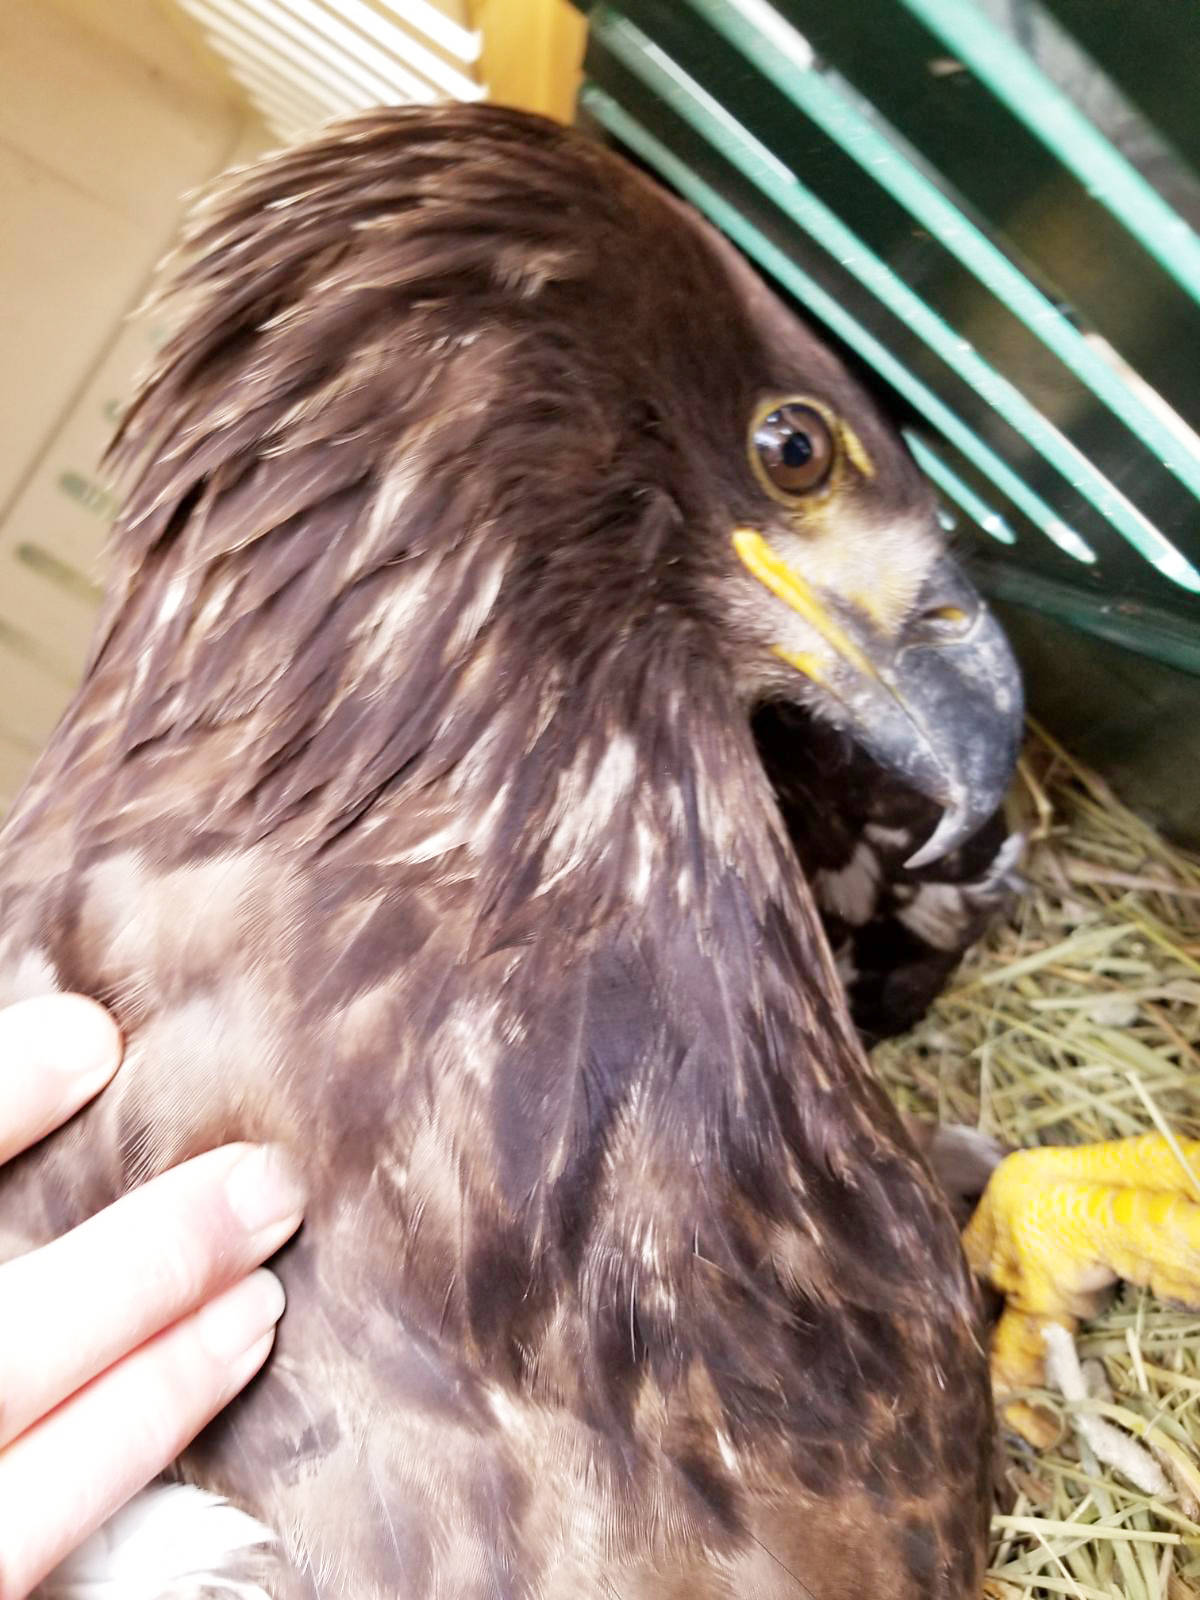 Sue Burton photo                                A juvenile eagle rescued at Puntzi tanker base is recuperating at the Orphaned Rescue Society facility in Delta.